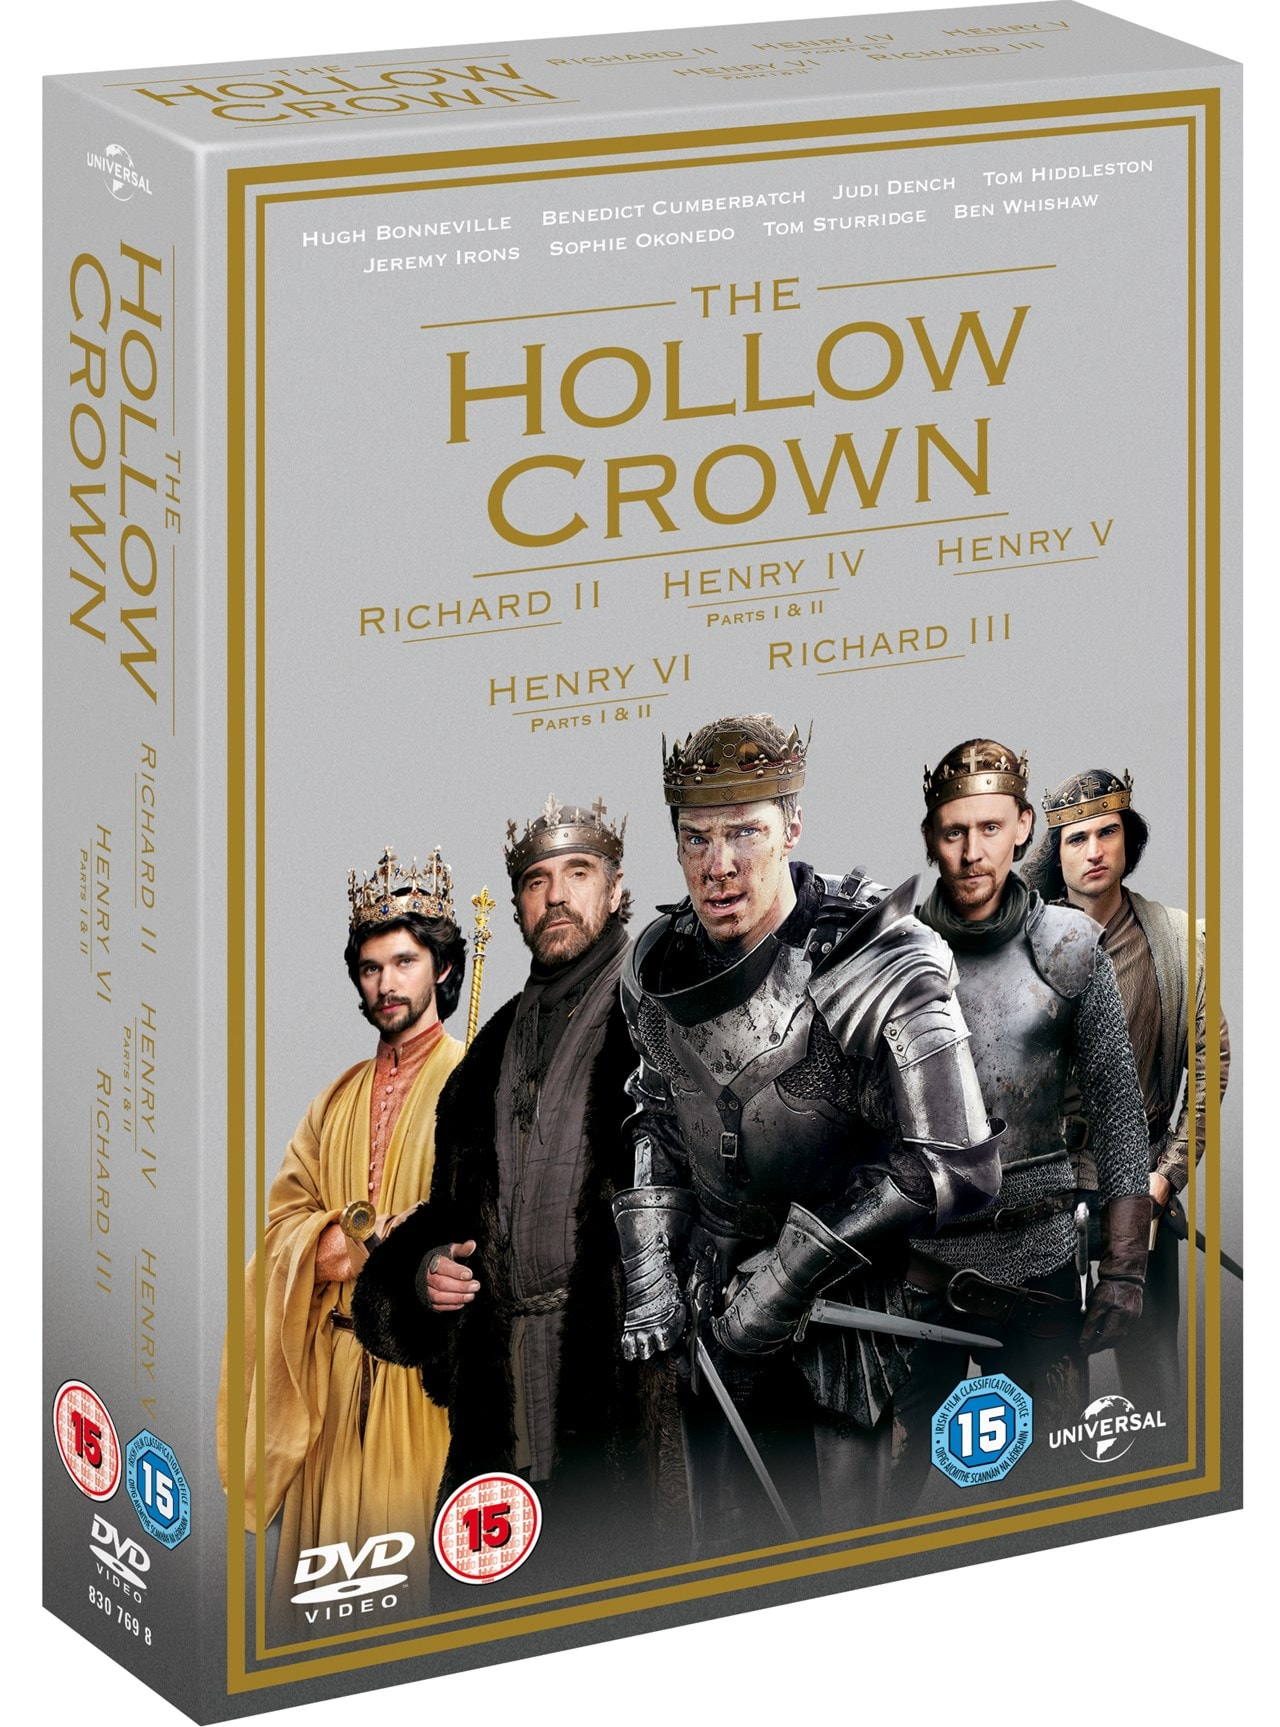 The Hollow Crown: Series 1 and 2 - 2